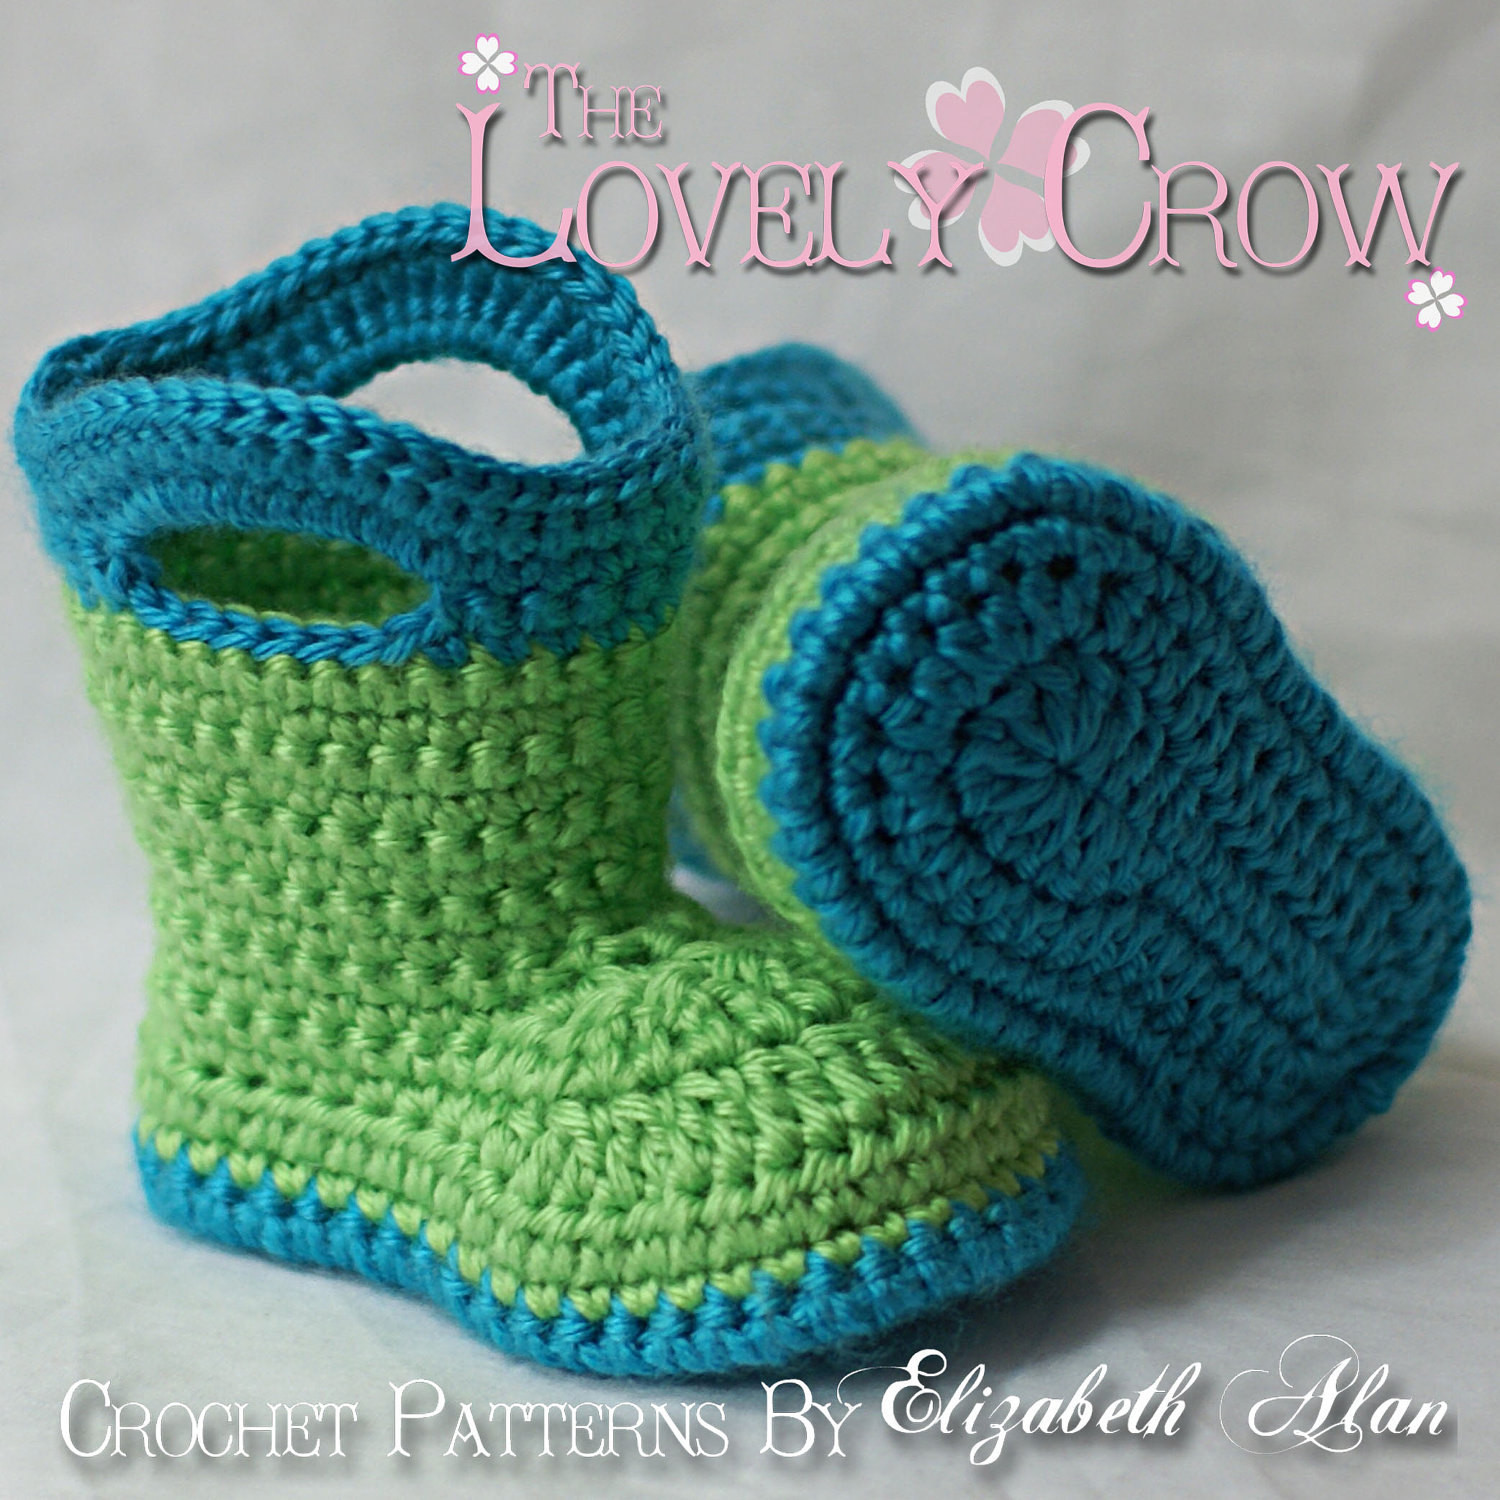 Crochet Baby Booties Unique Booties Crochet Pattern Baby Booties for Baby Goshalosh Boots Of Crochet Baby Booties Fresh Crochet Baby Mary Jane Booties Free Patterns